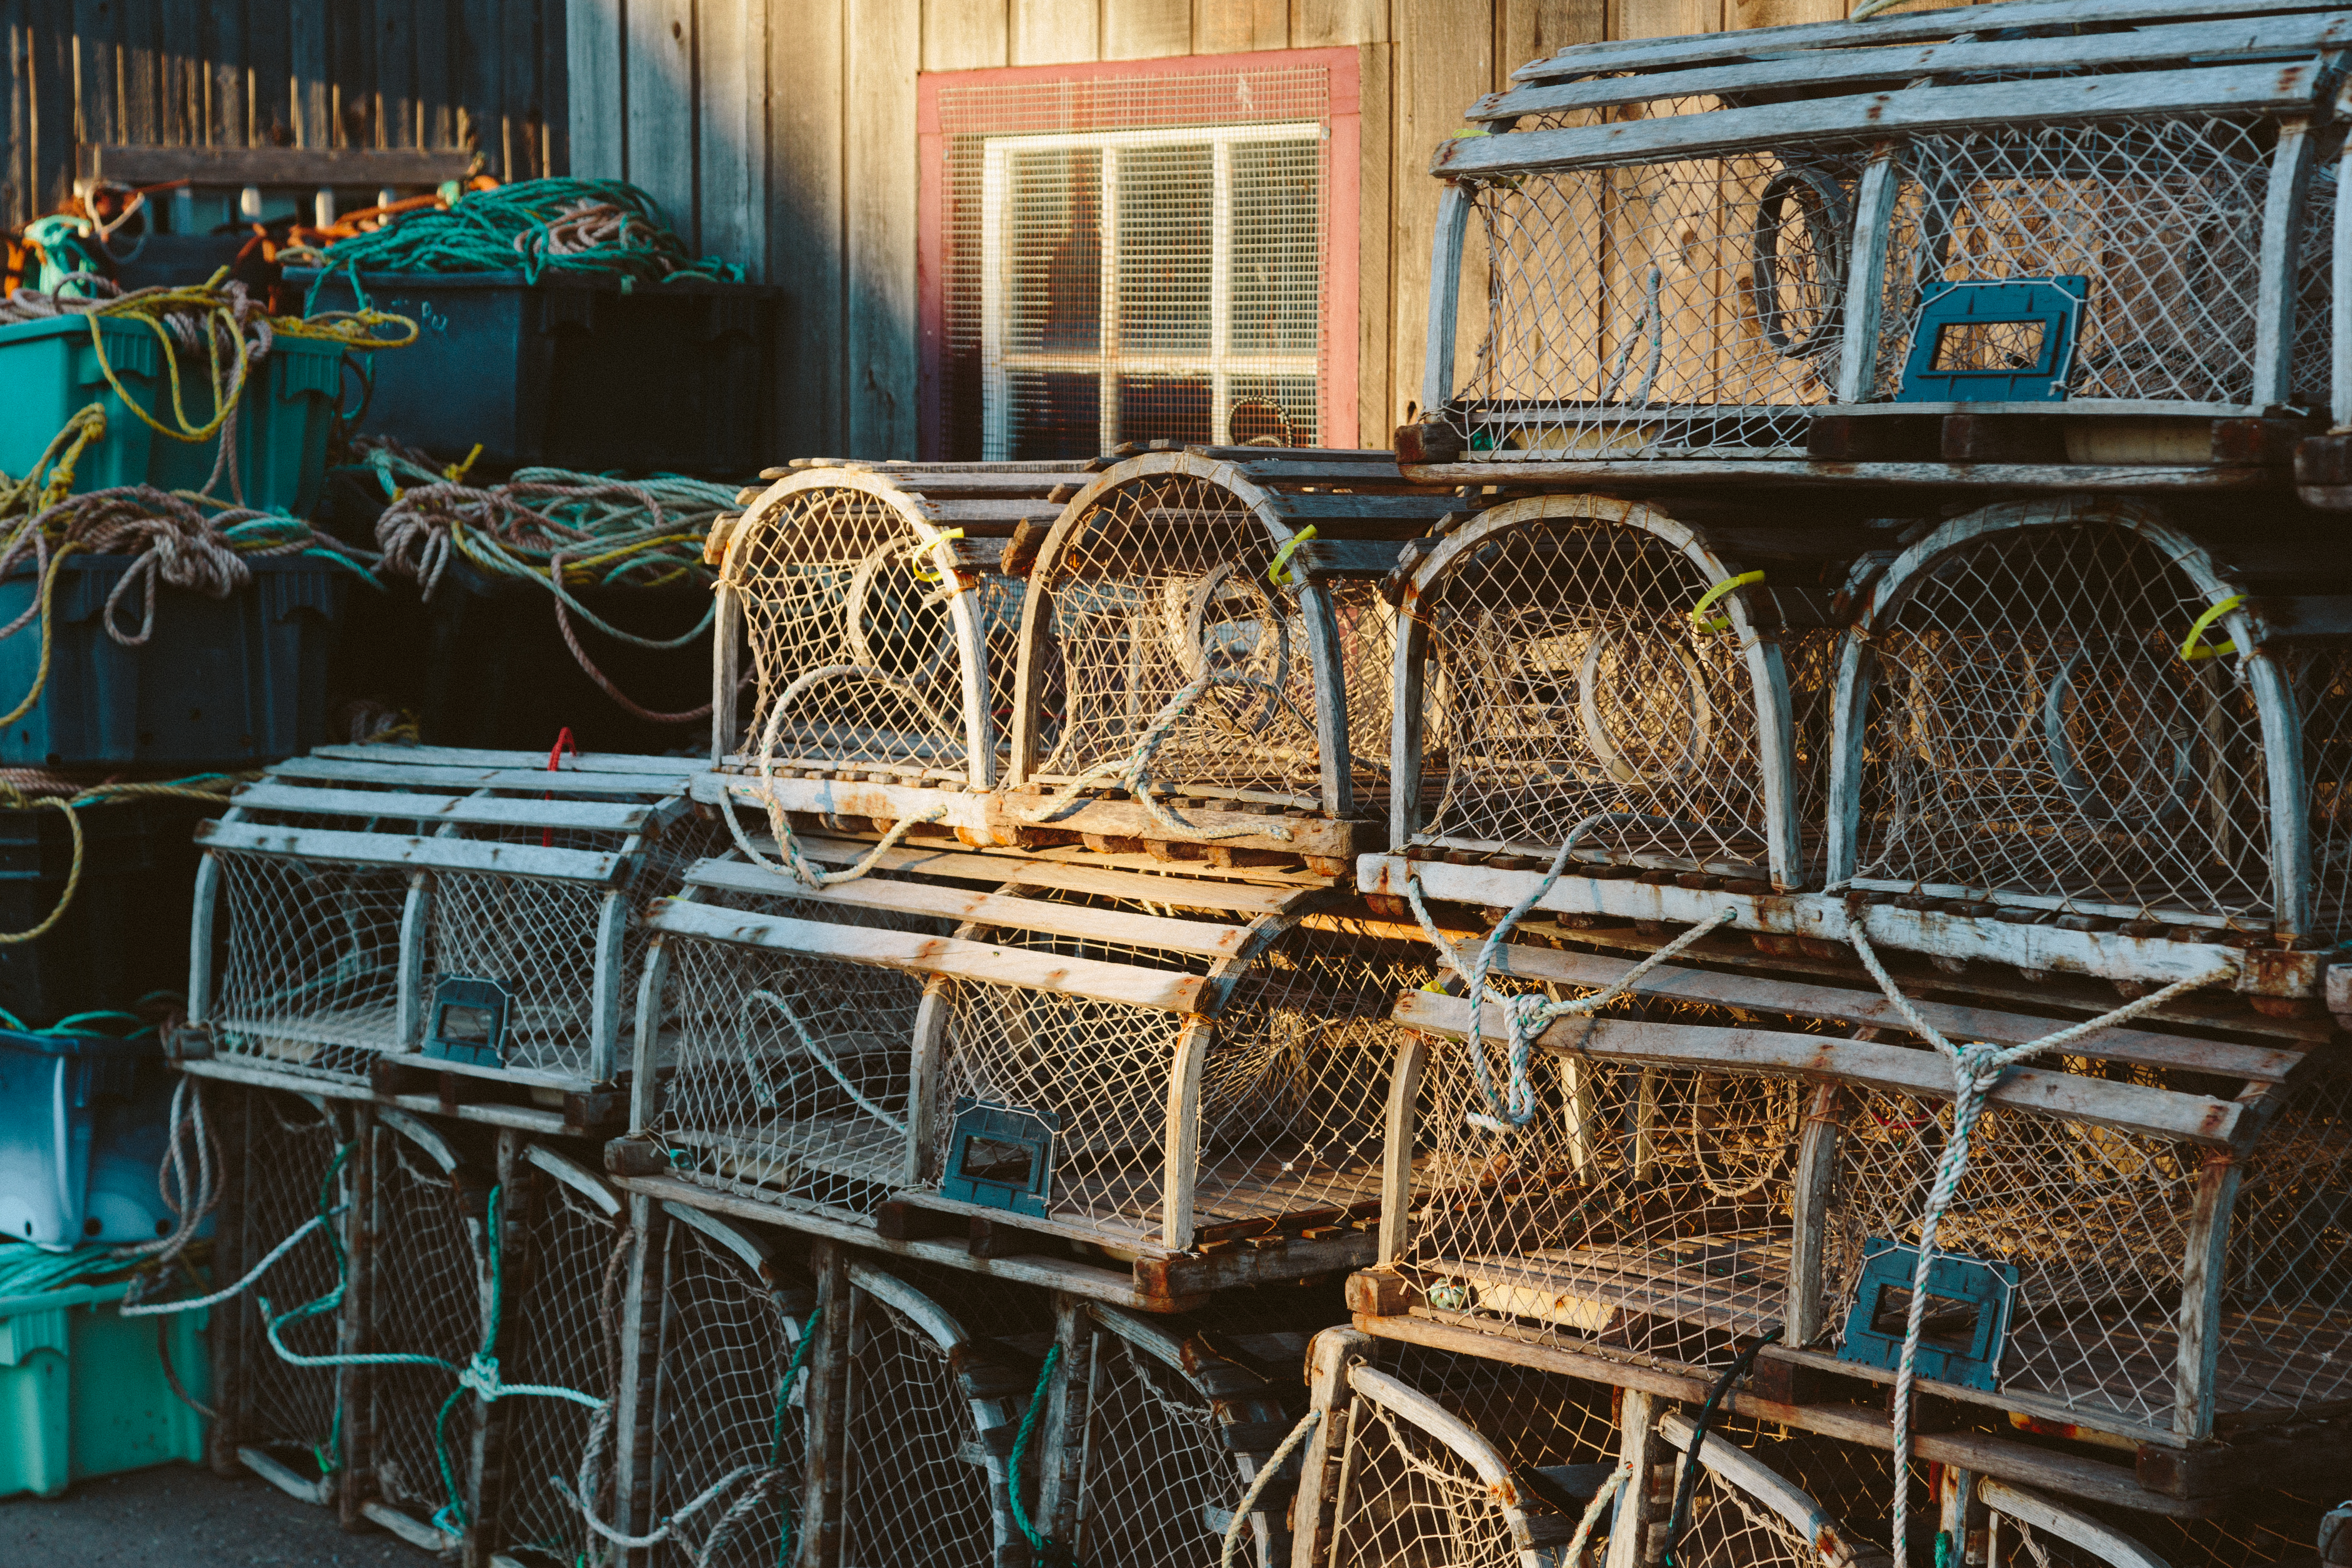 Prince Edward Island Stock Photo Lobster Traps In Morning Light Stock Photo